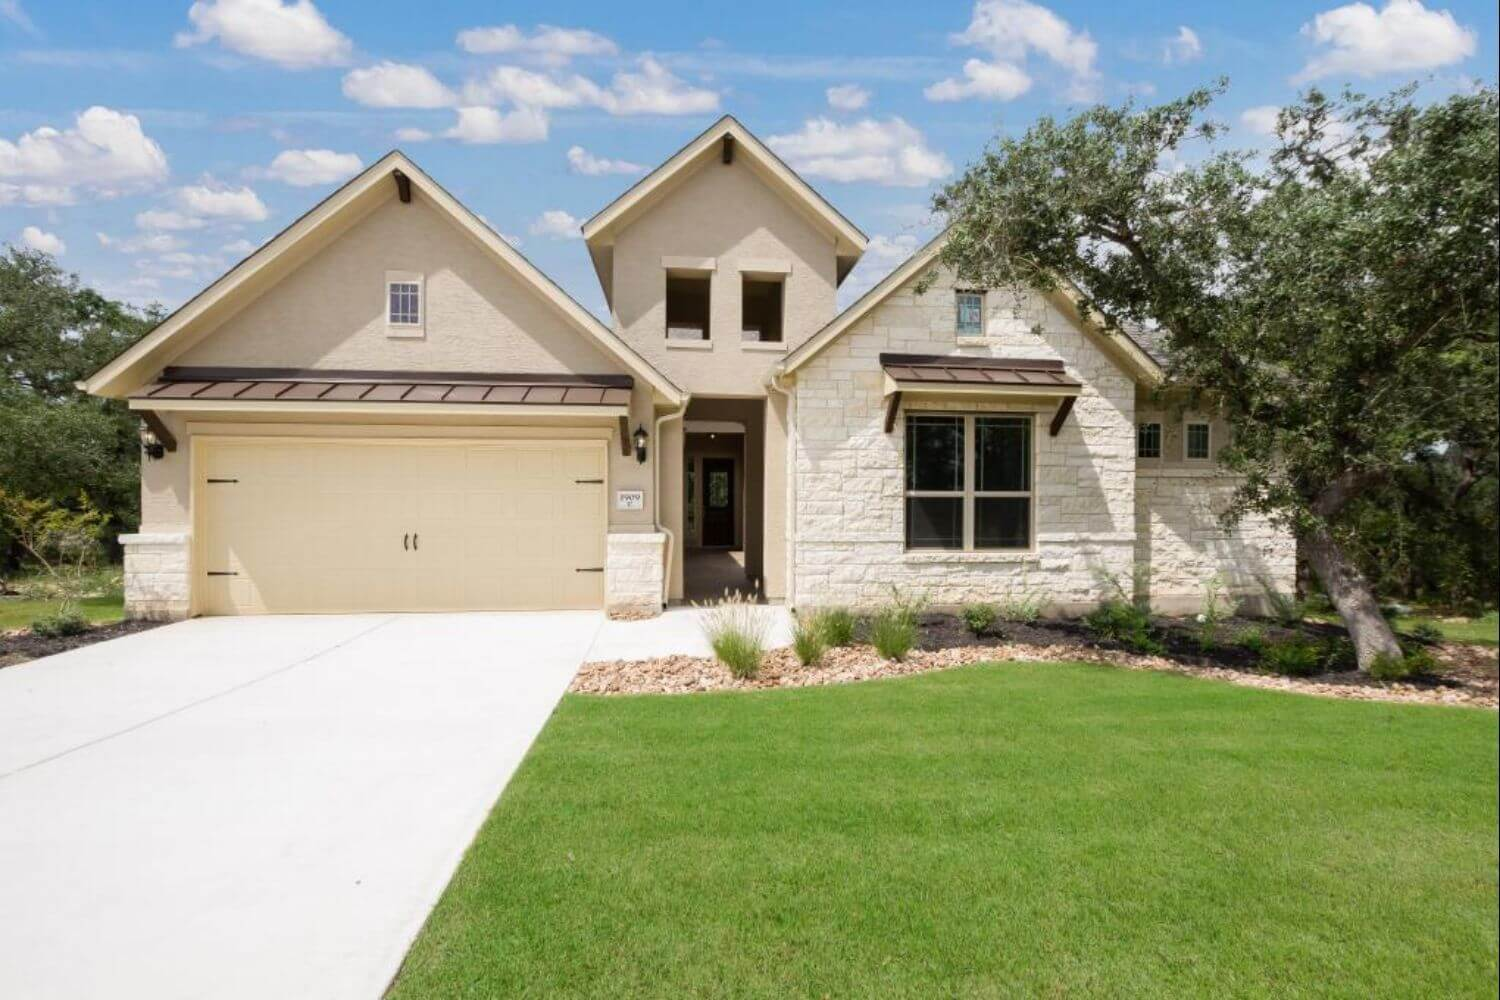 Single Family for Sale at Design 2583 1909 Glendon Dr San Antonio, Texas 78260 United States